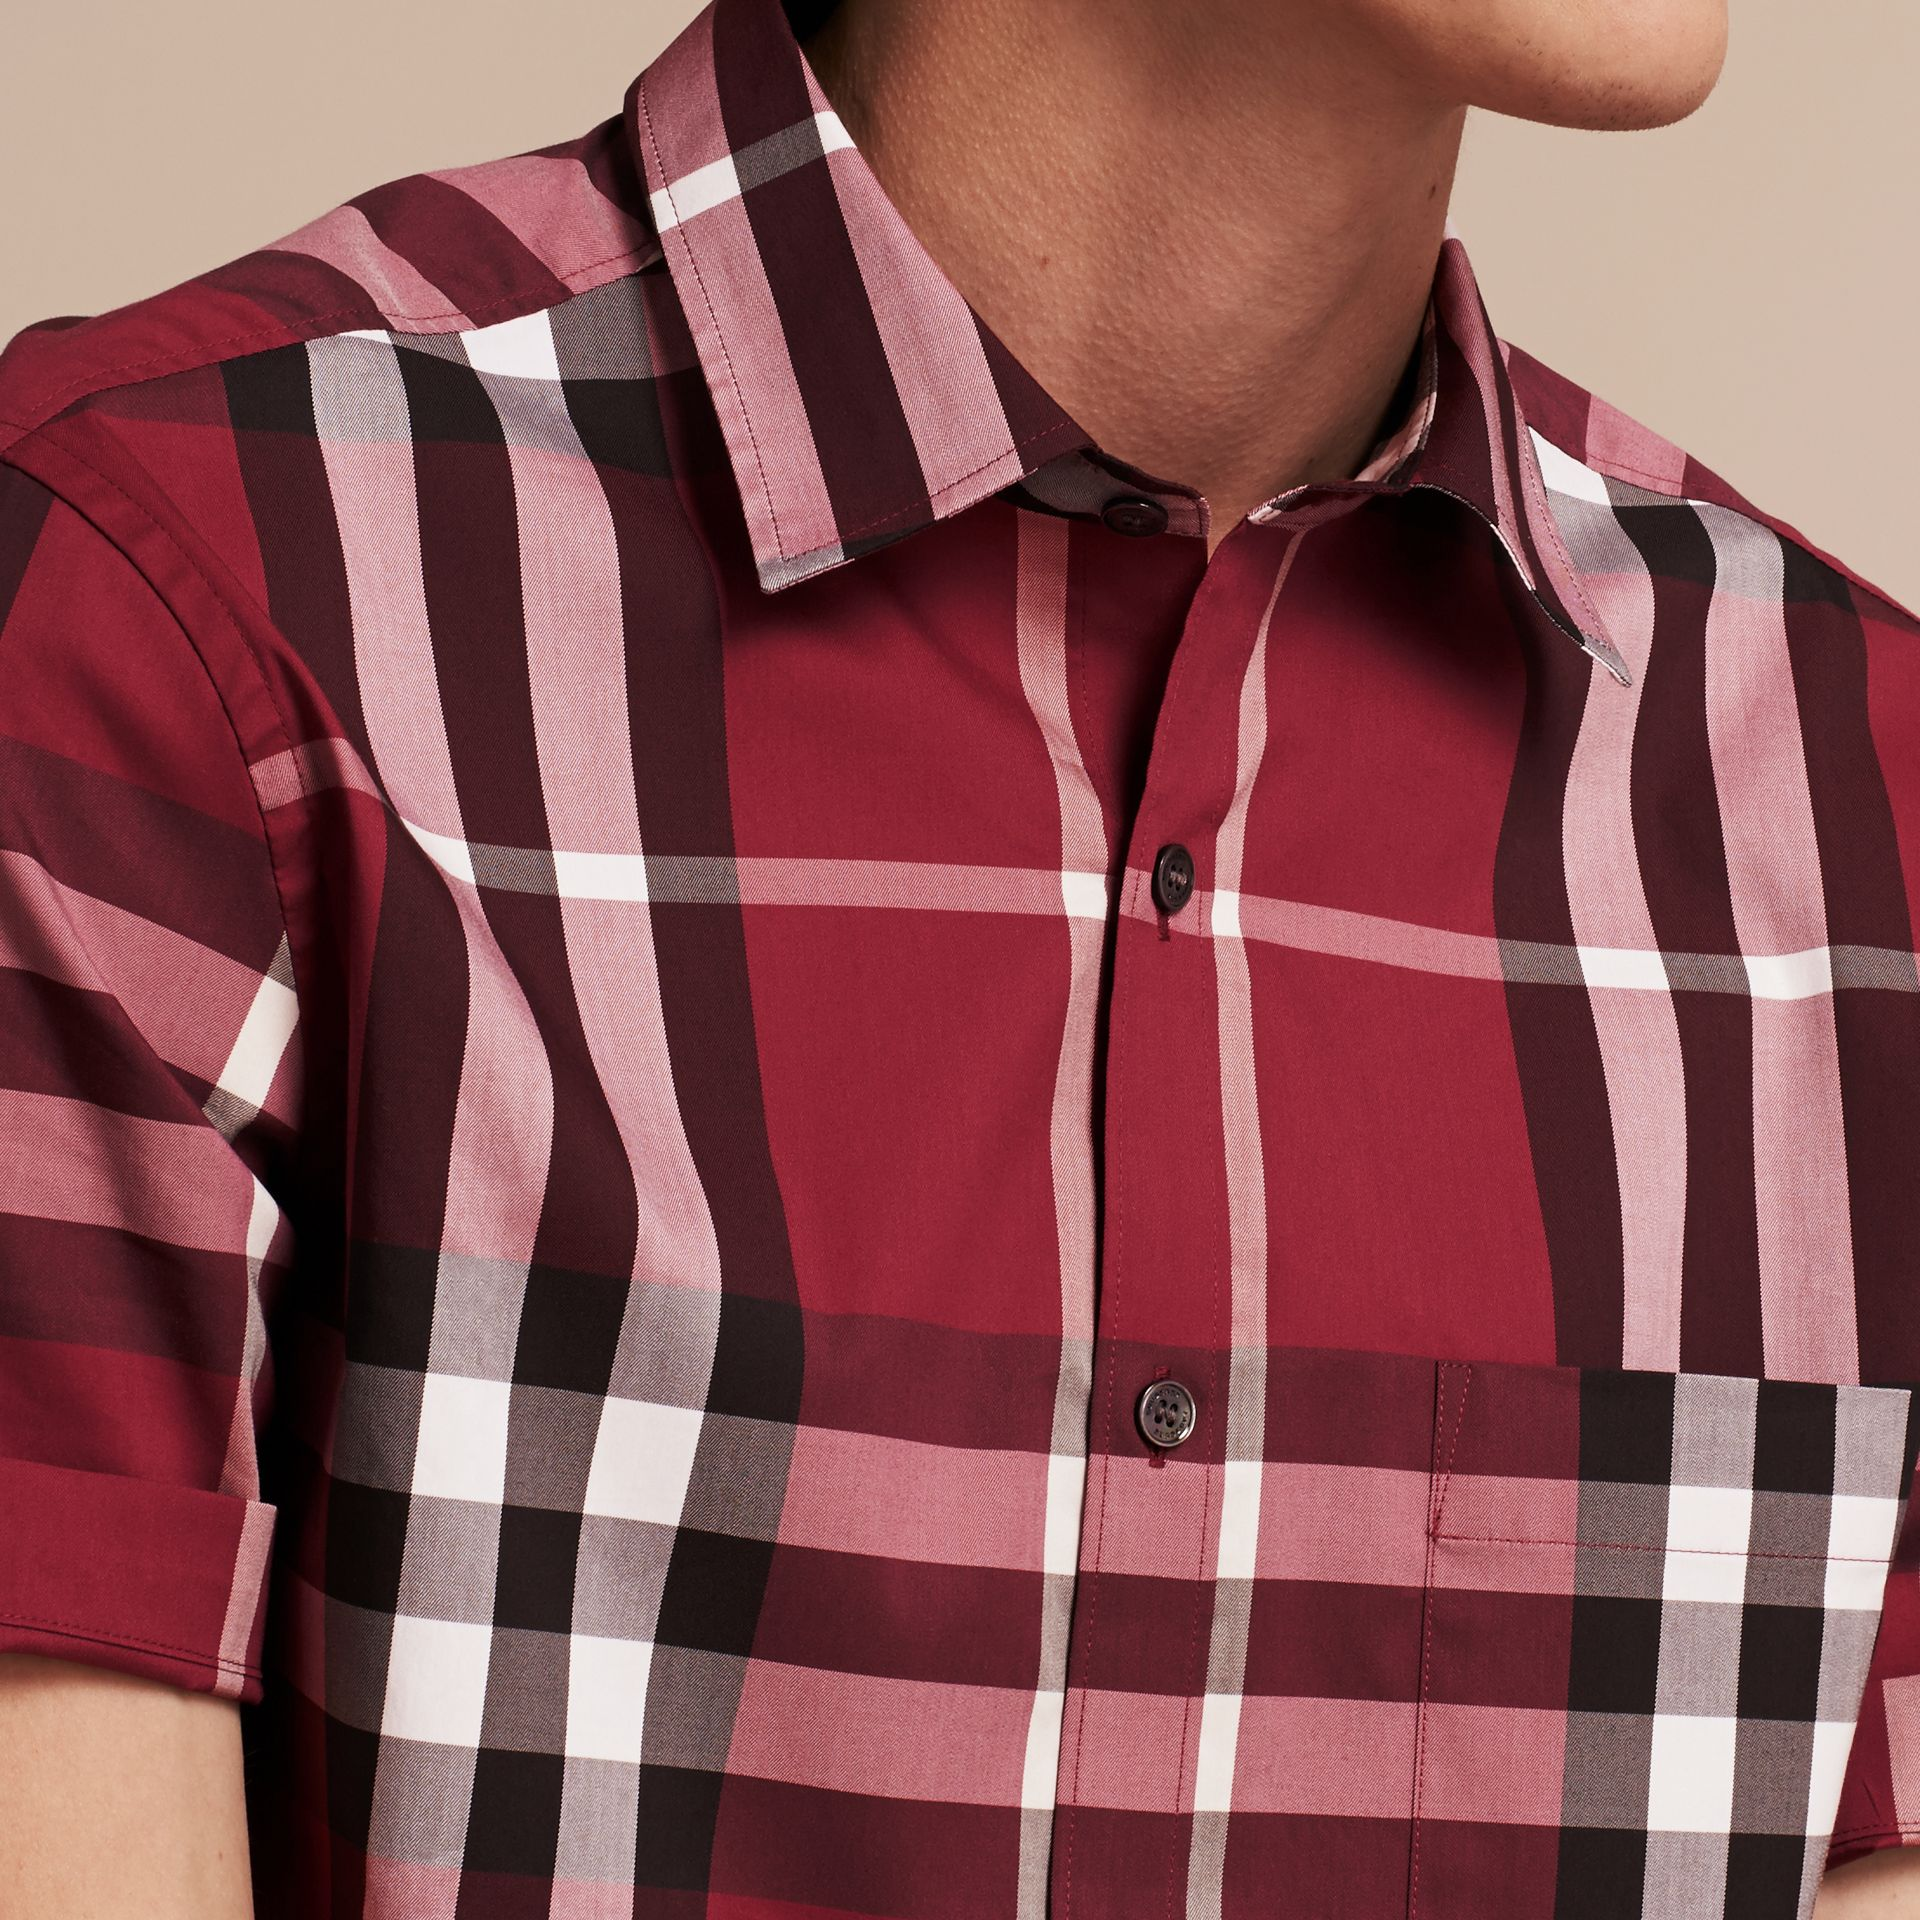 Short-sleeved Check Stretch Cotton Shirt in Plum Pink - Men | Burberry - gallery image 5